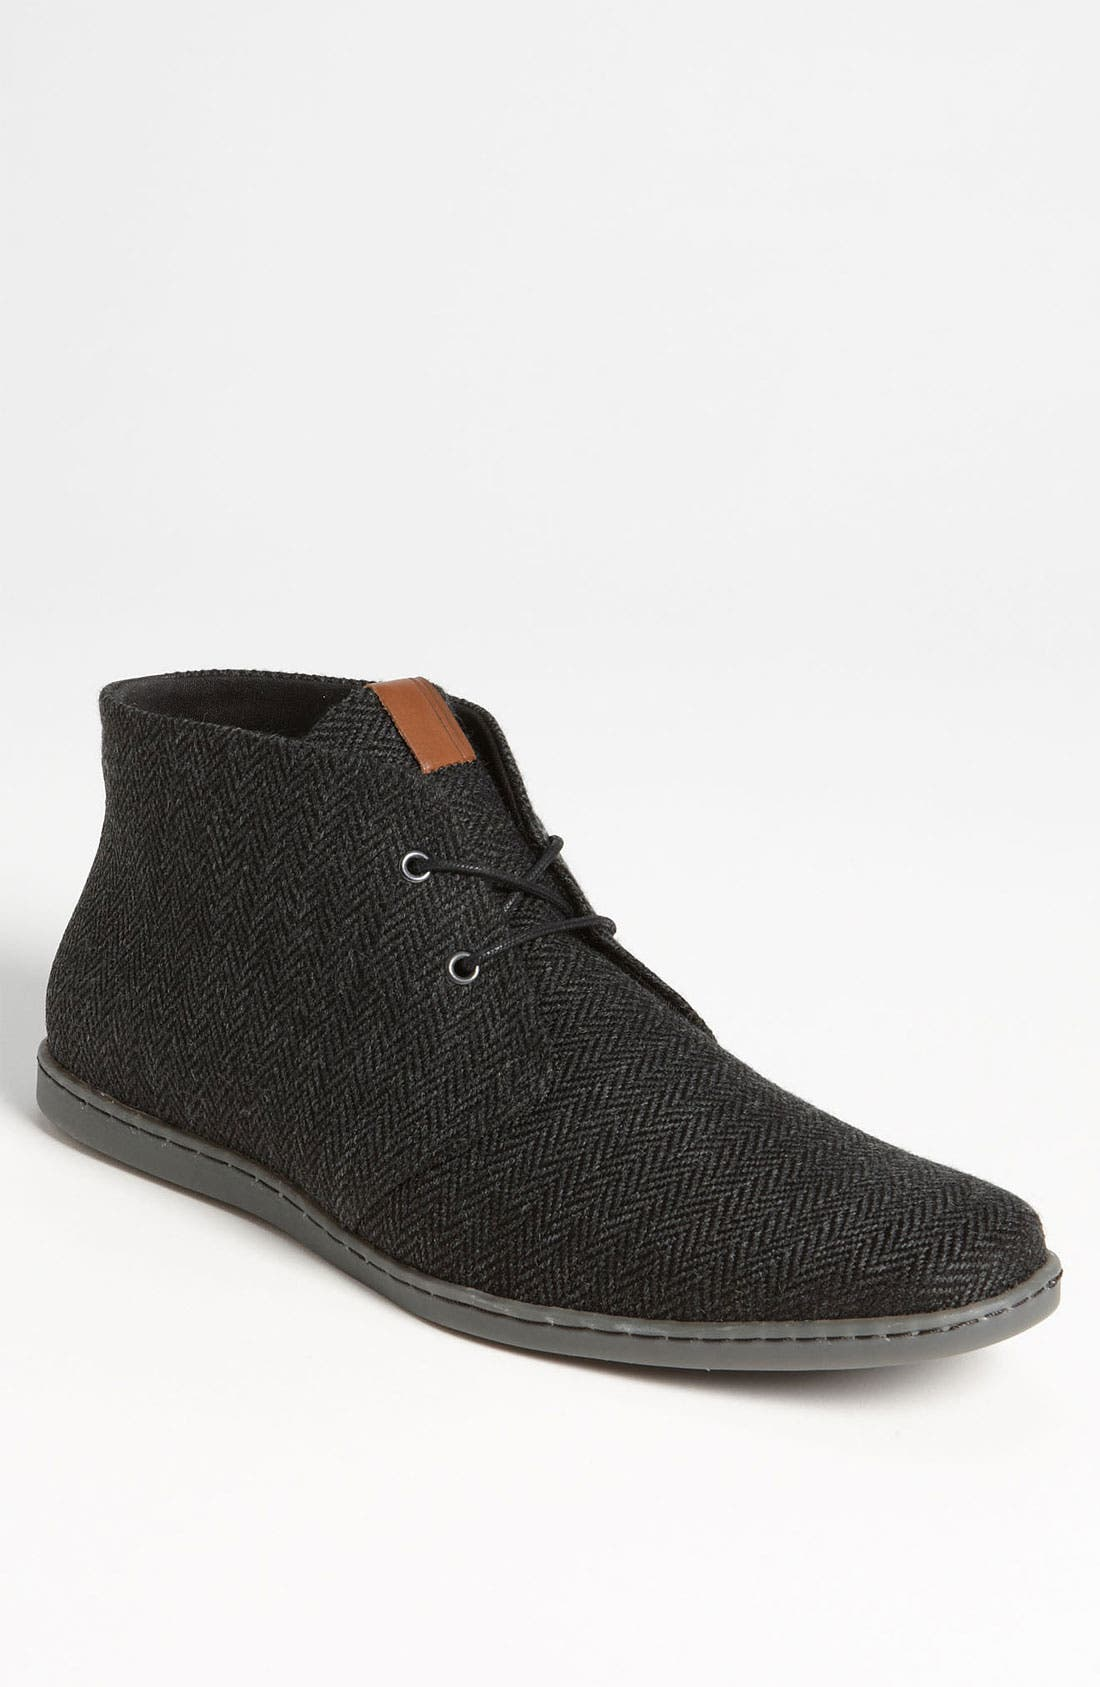 Main Image - Fred Perry 'Goldhawk' Chukka Boot